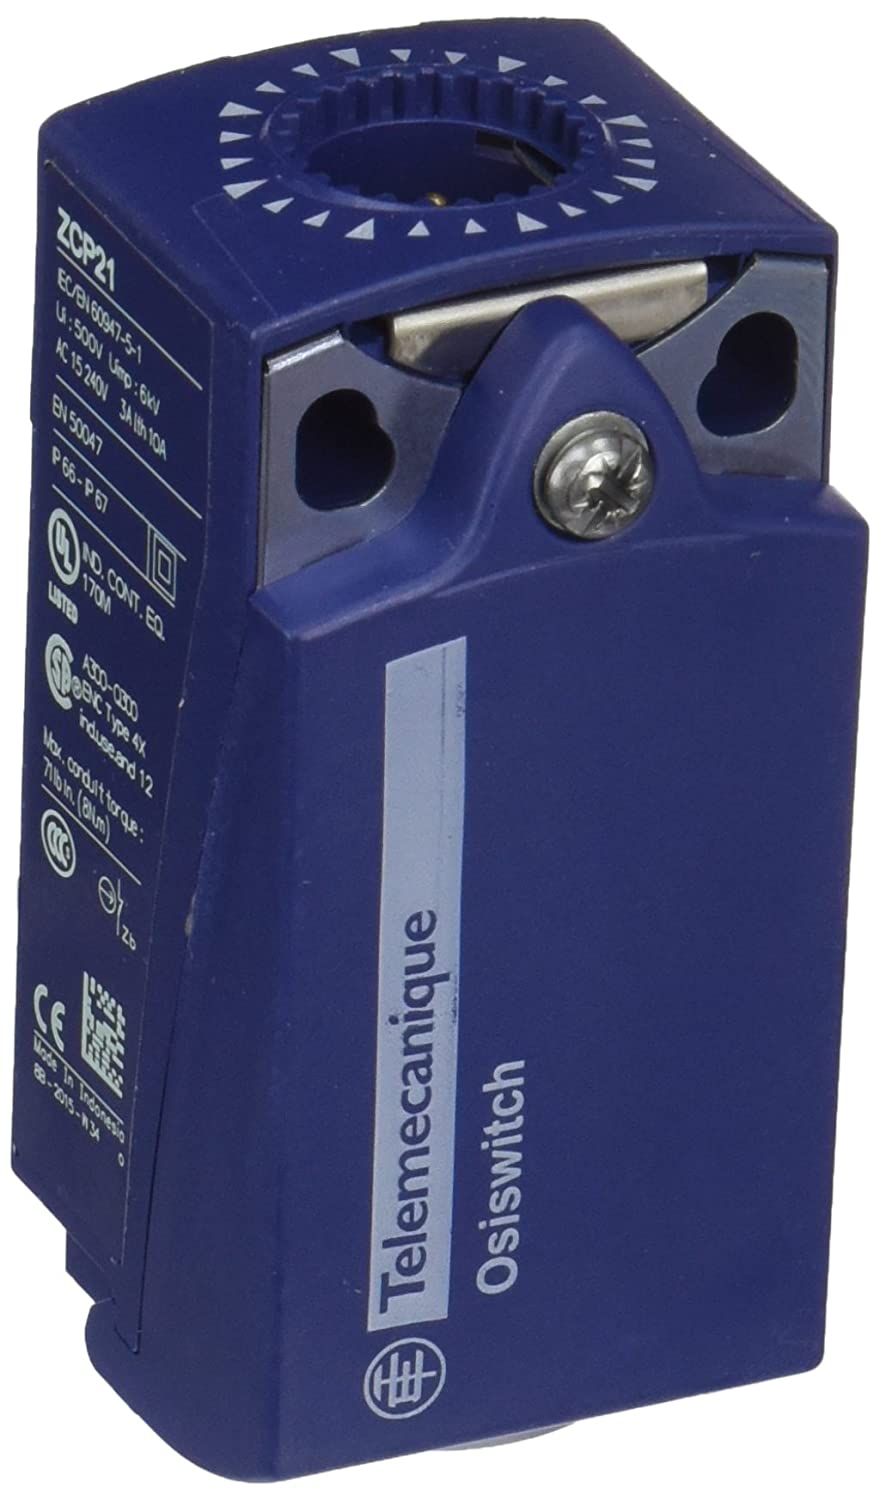 Snap Action 31 mm Width x 65 mm Height x 30 mm Depth Telemecanique Sensors ZCP21 Limit Switch Body Fixed 2 Poles Plastic